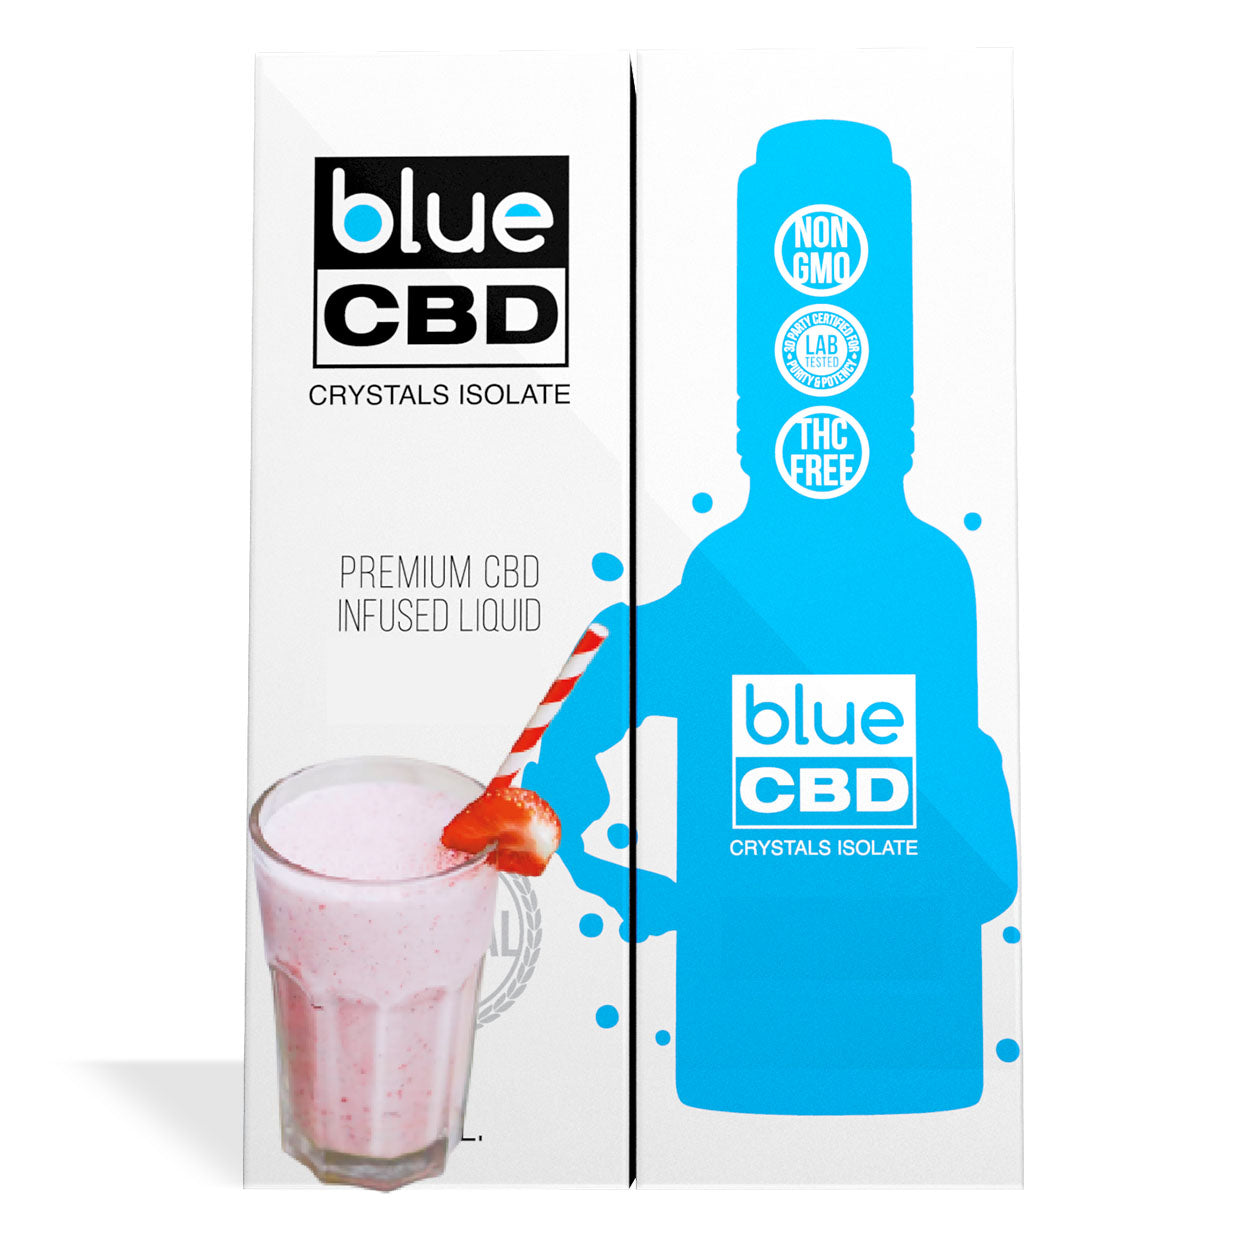 Strawberry Milk Flavor Blue CBD Crystal Isolate - My CBD Mall